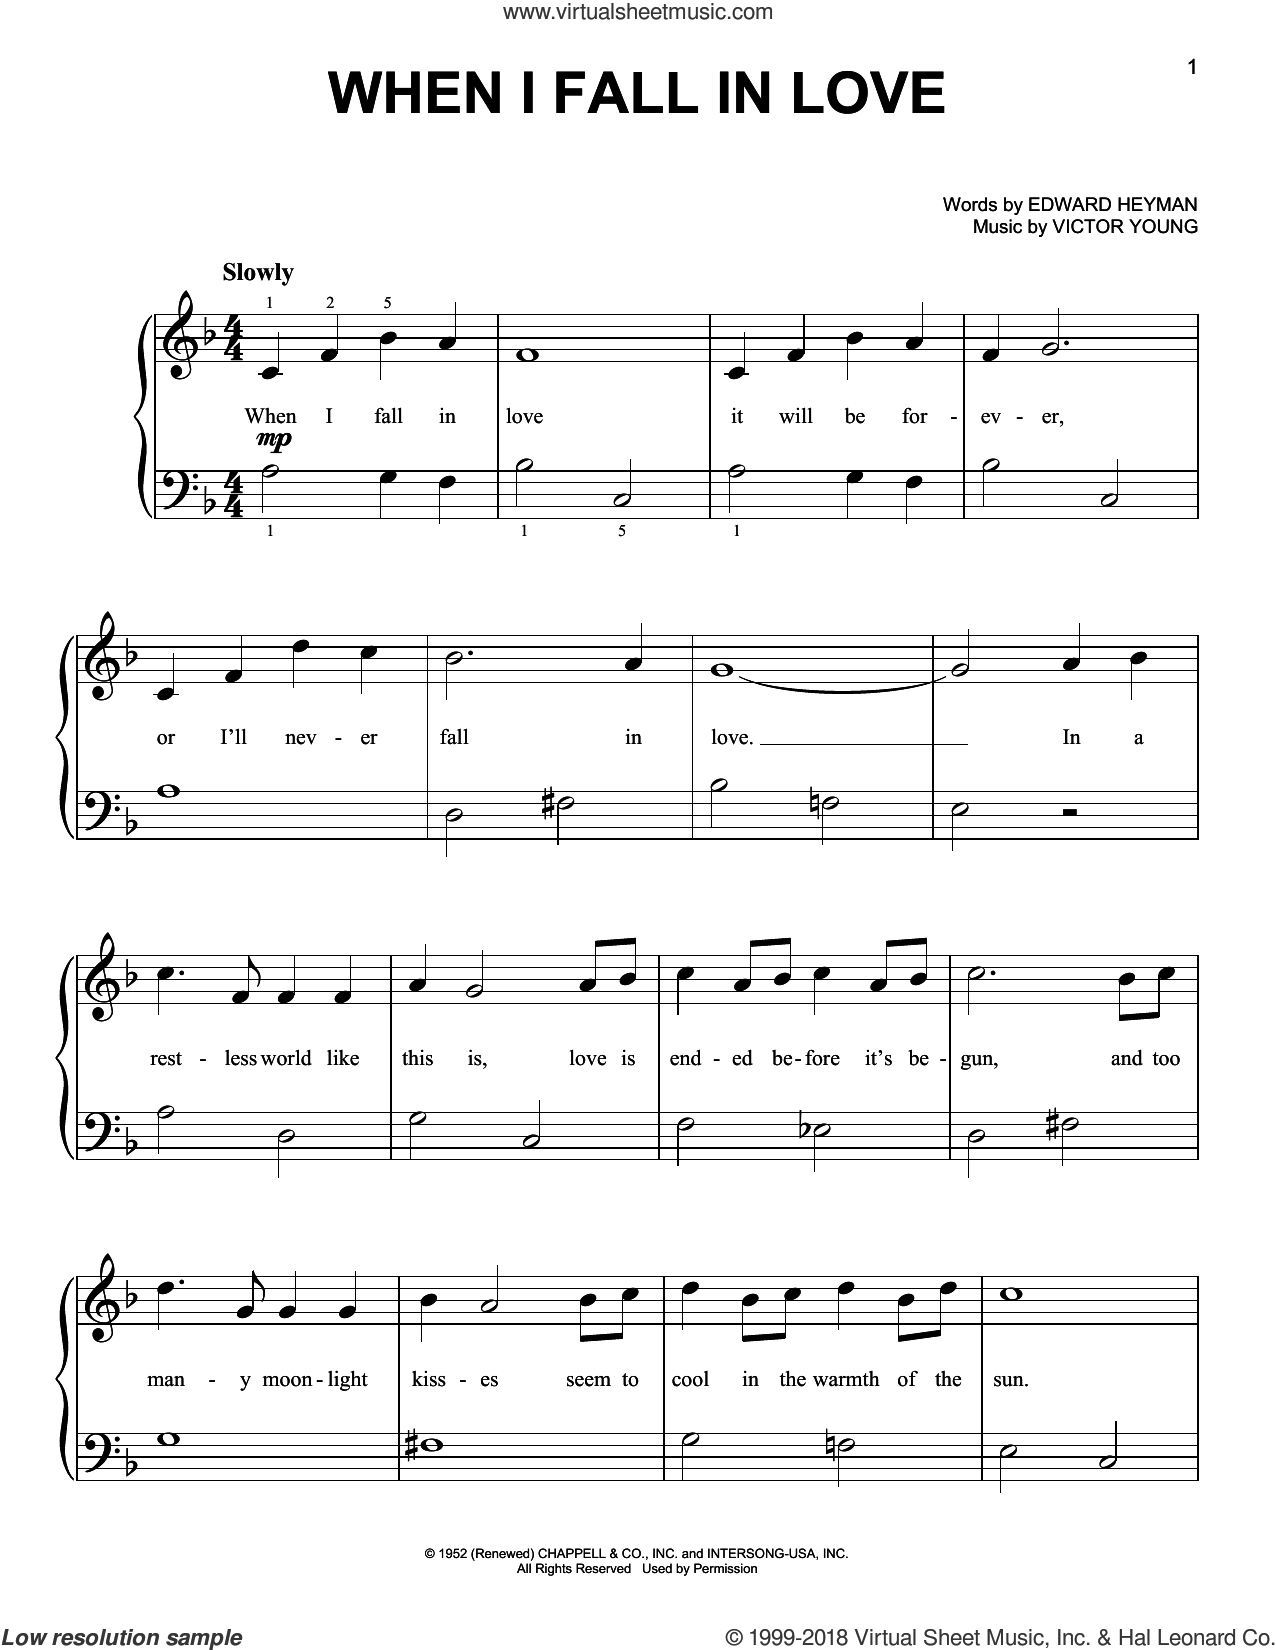 When I Fall In Love sheet music for piano solo by Edward Heyman, Carpenters, Celine Dion and Clive Griffin, The Lettermen and Victor Young, beginner skill level